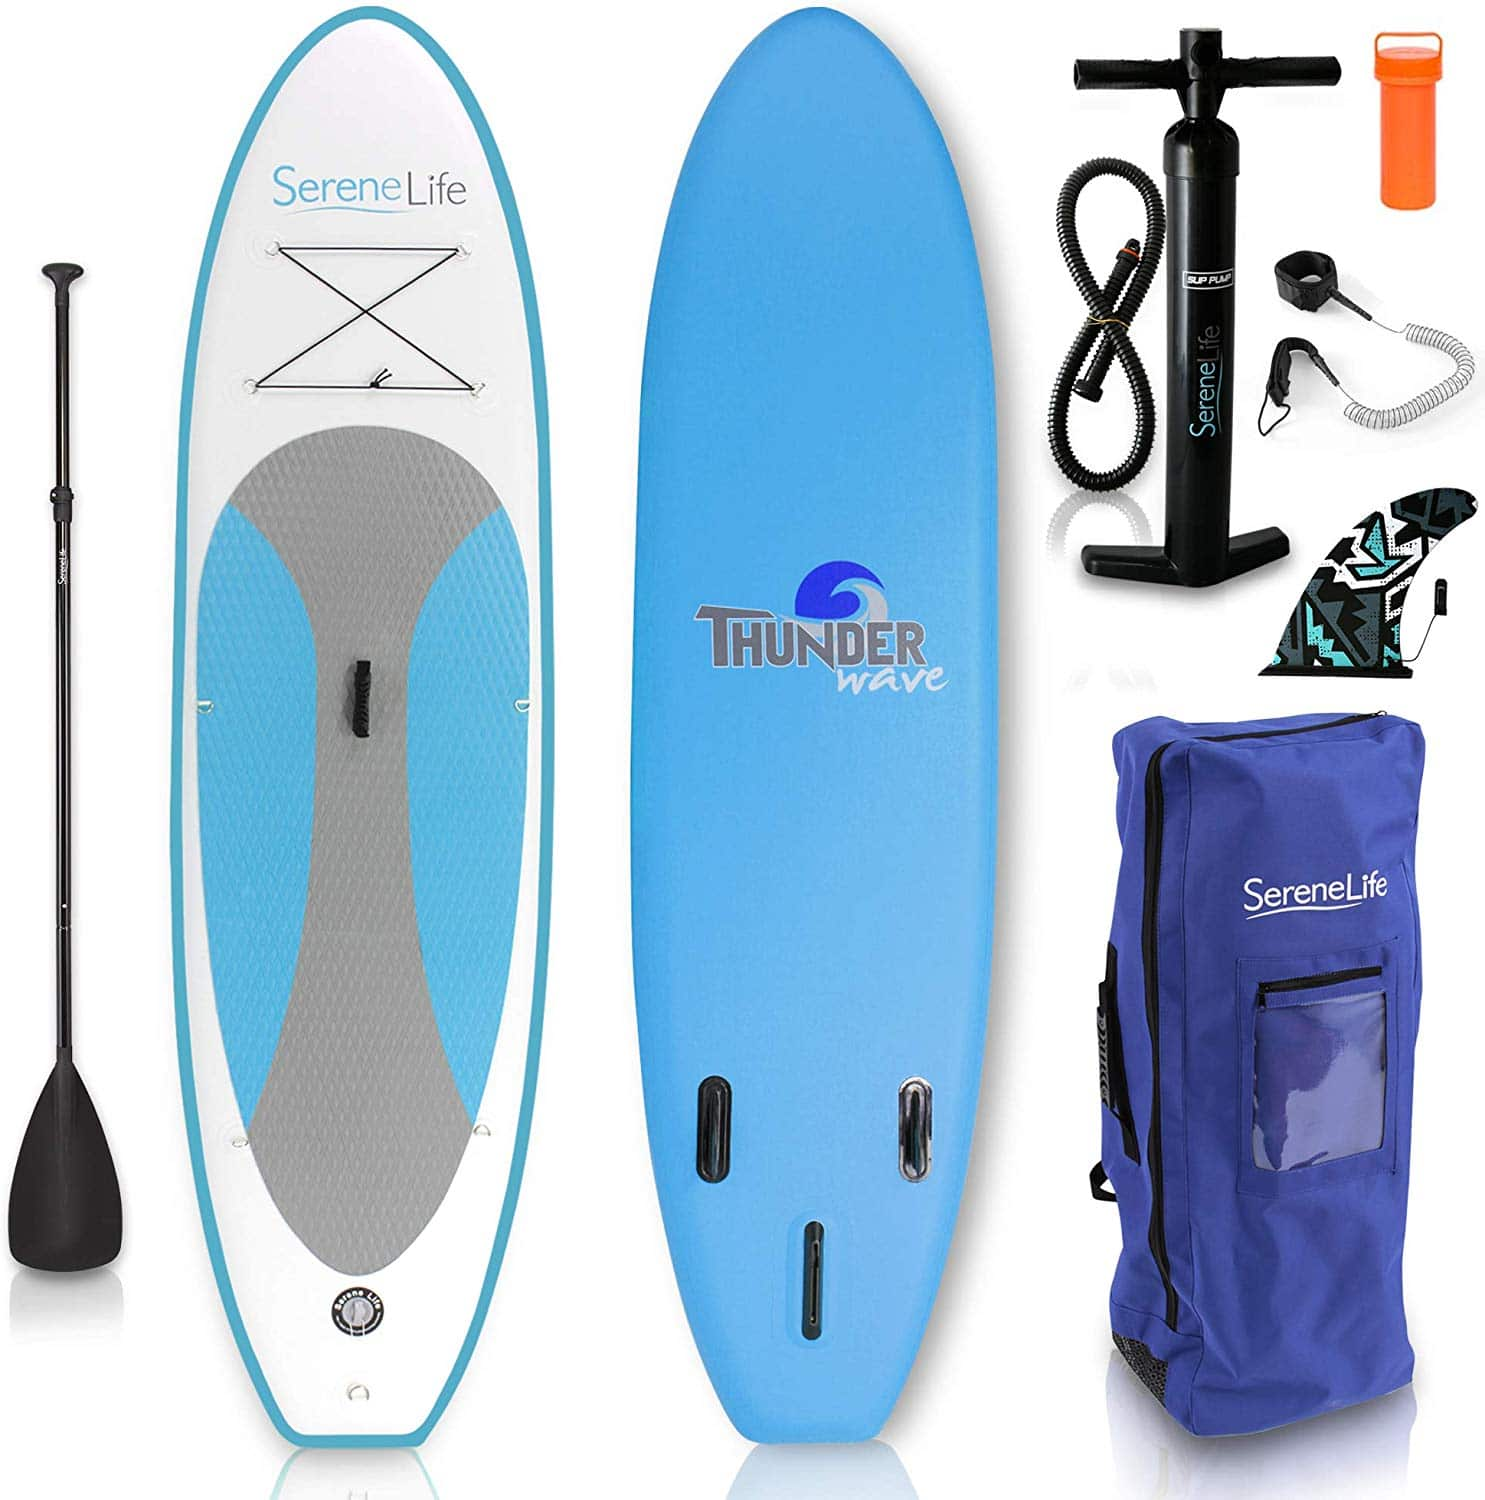 SereneLife inflatable standup paddle board